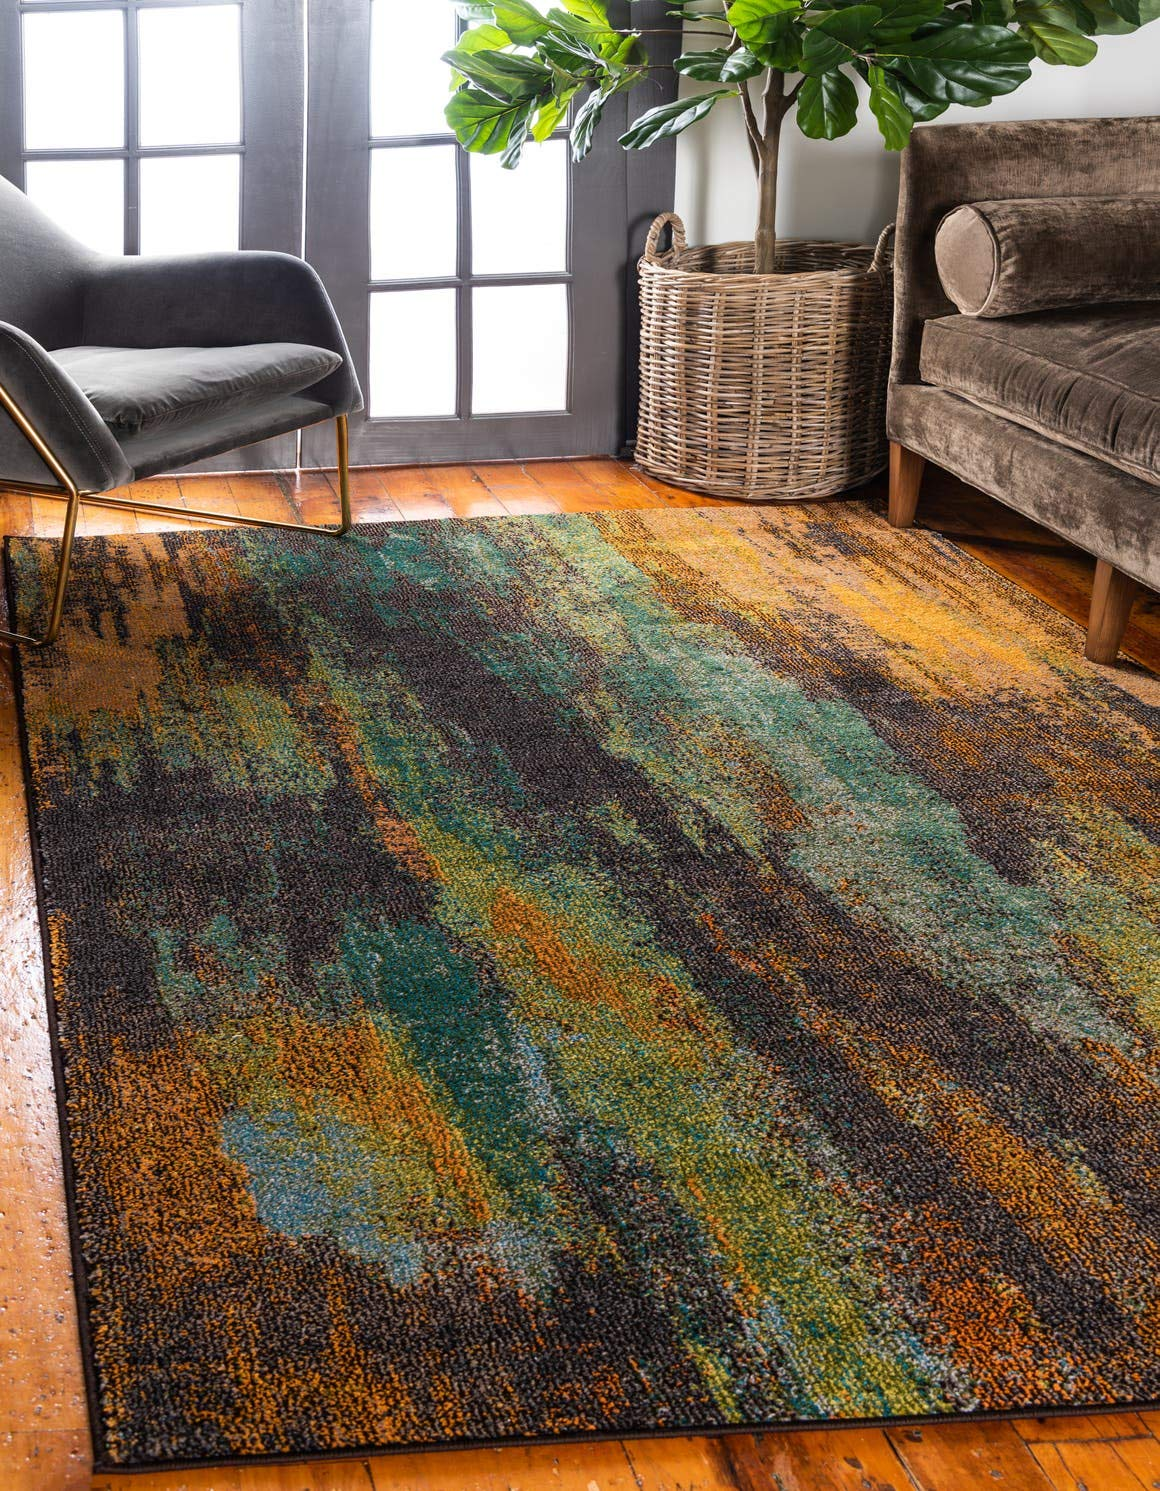 Unique Loom Jardin Collection Vibrant Abstract Multi Area Rug 6 0 x 9 0